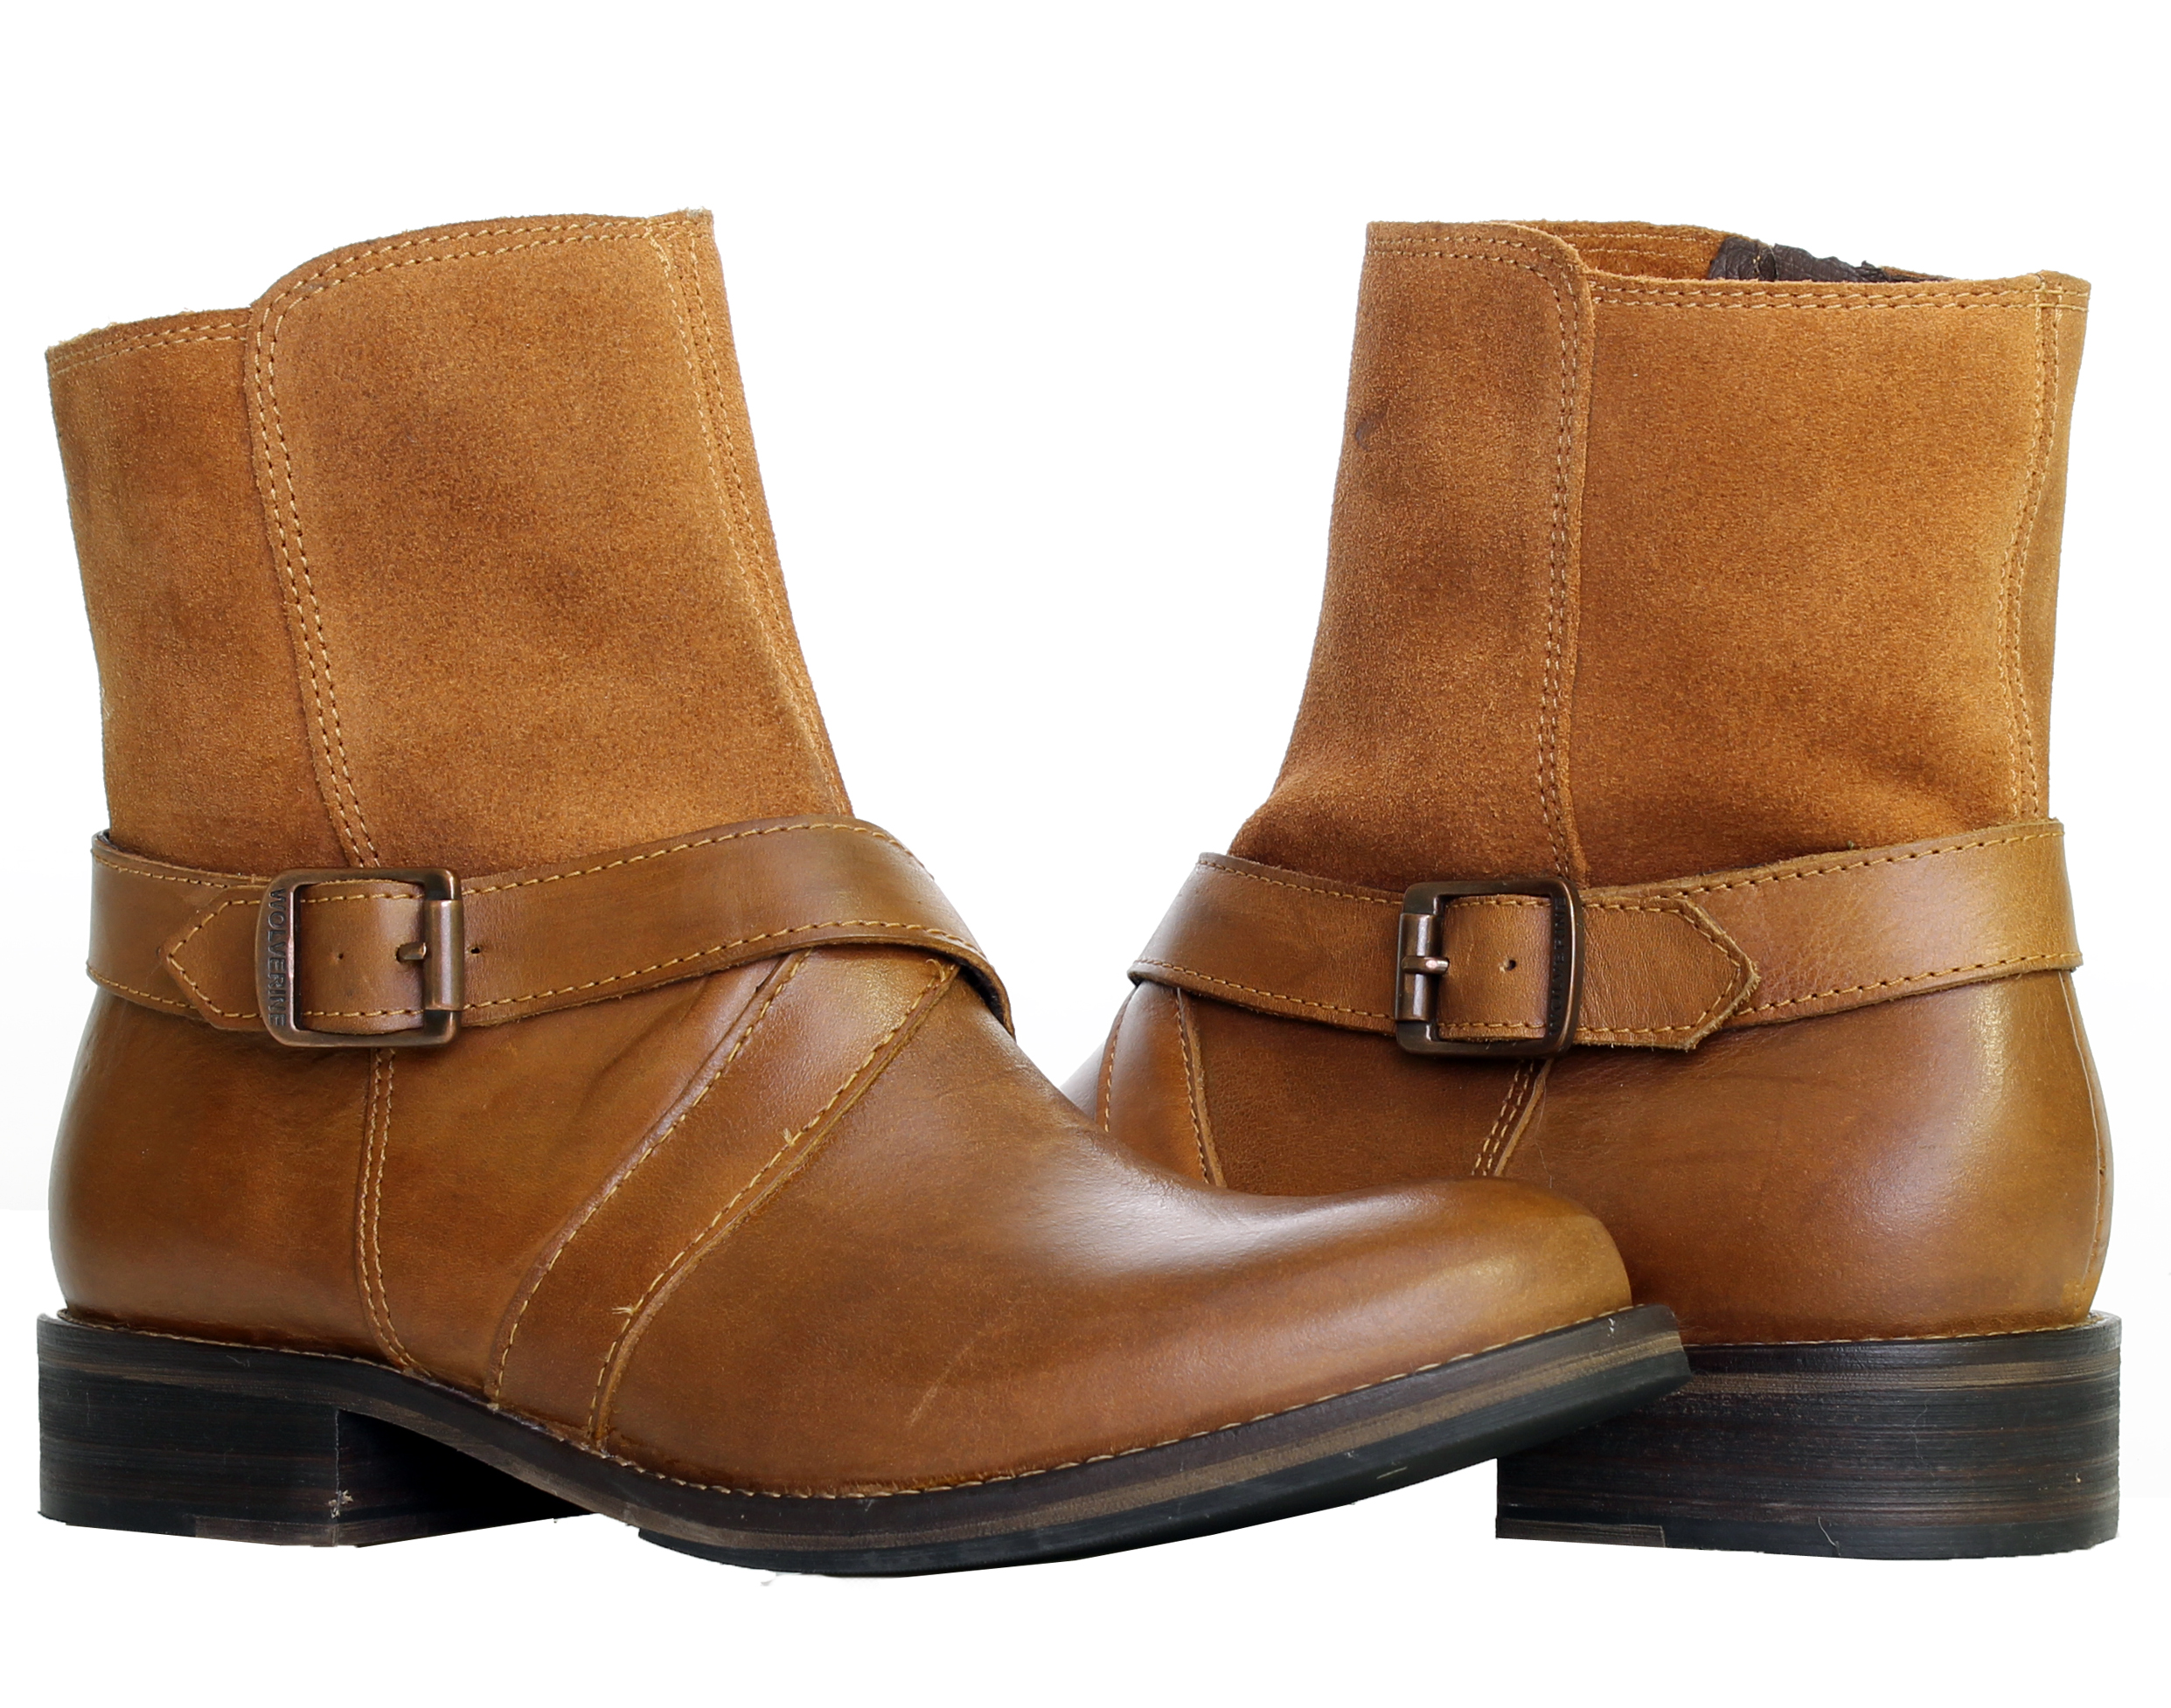 1883 by Wolverine Pearl Tan Leather Women's Ankle Boots W40088 by Wolverine